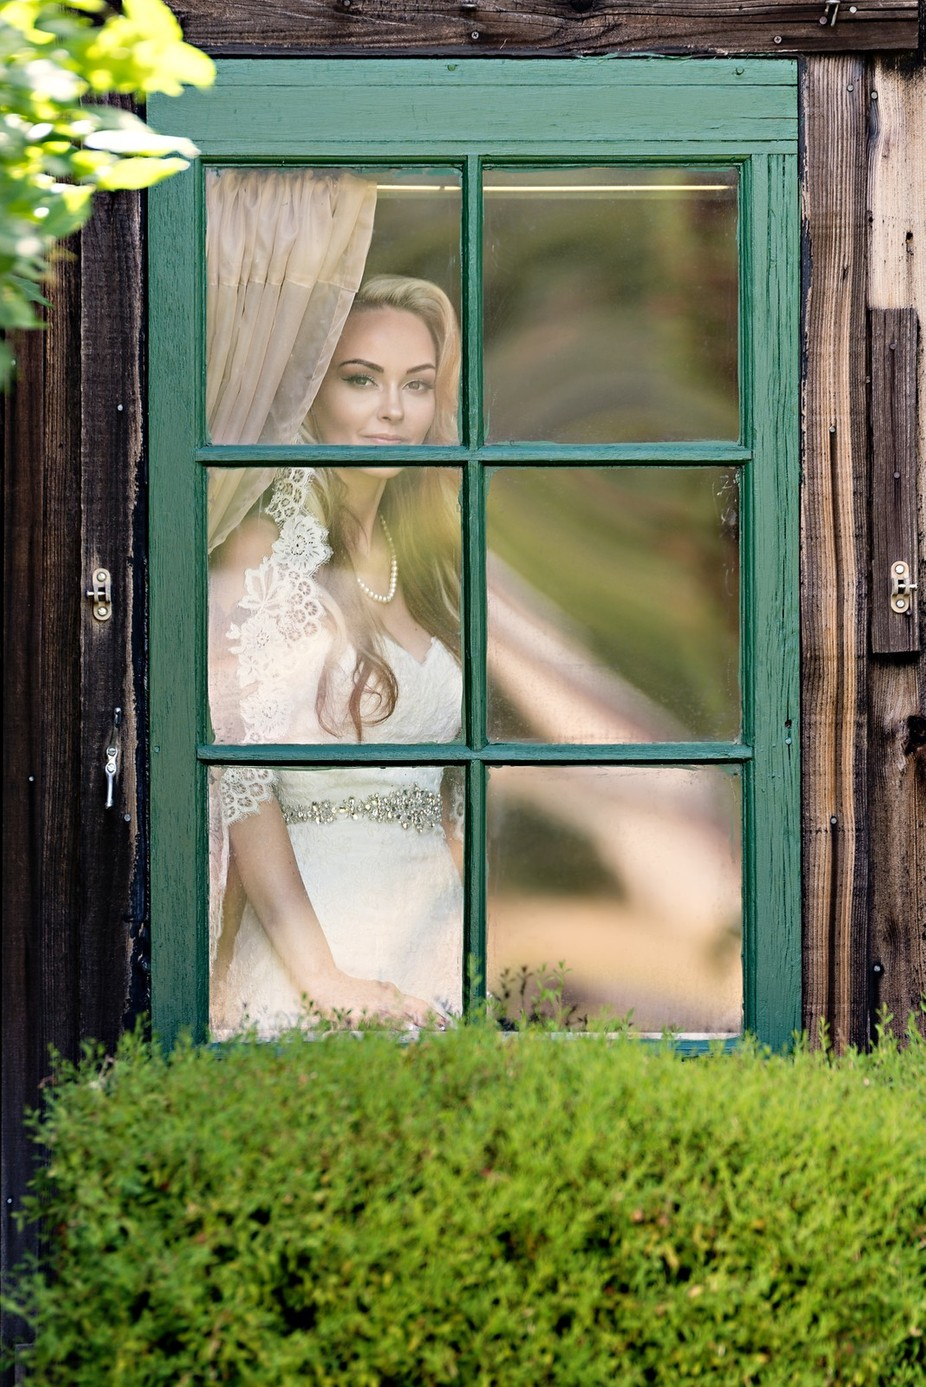 Kayla by NickLarsonPhotography - Here Comes The Bride Photo Contest